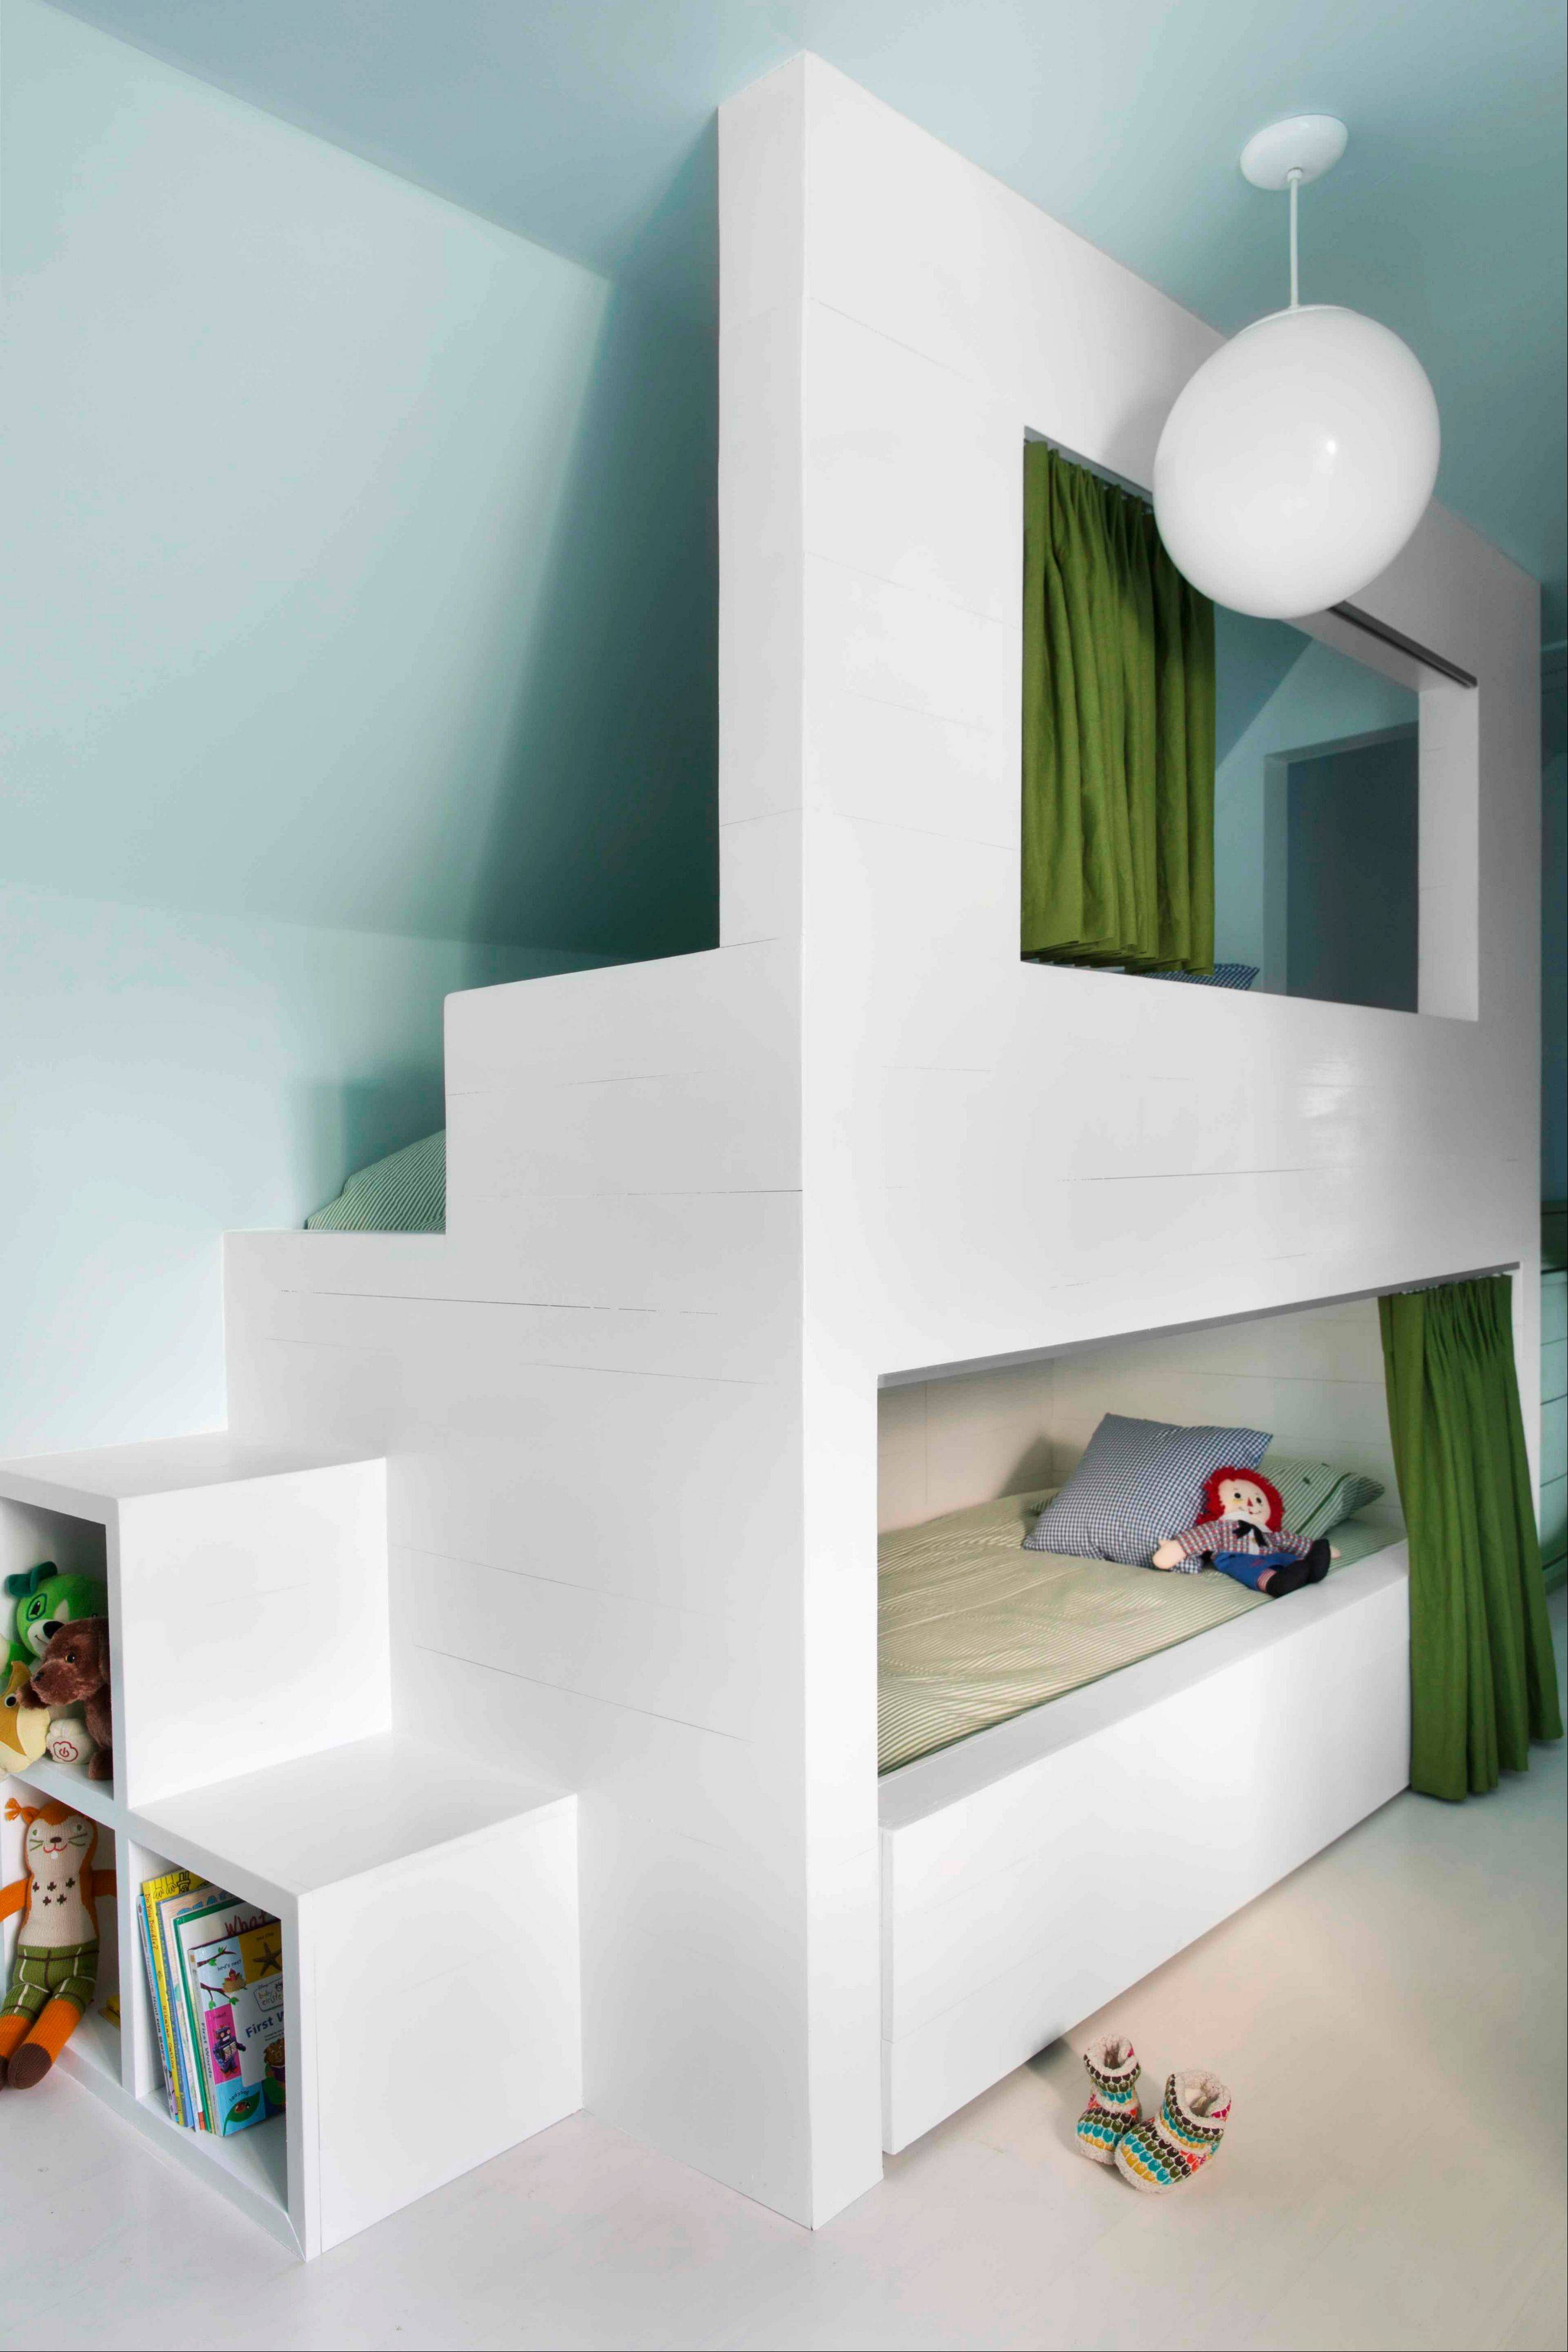 Flynn says bunk rooms are becoming more and more popular with homeowners who have awkward bonus rooms that are otherwise hard to furnish. Flynn suggests investing in custom built-in bunks to maximize a home's sleeping space.